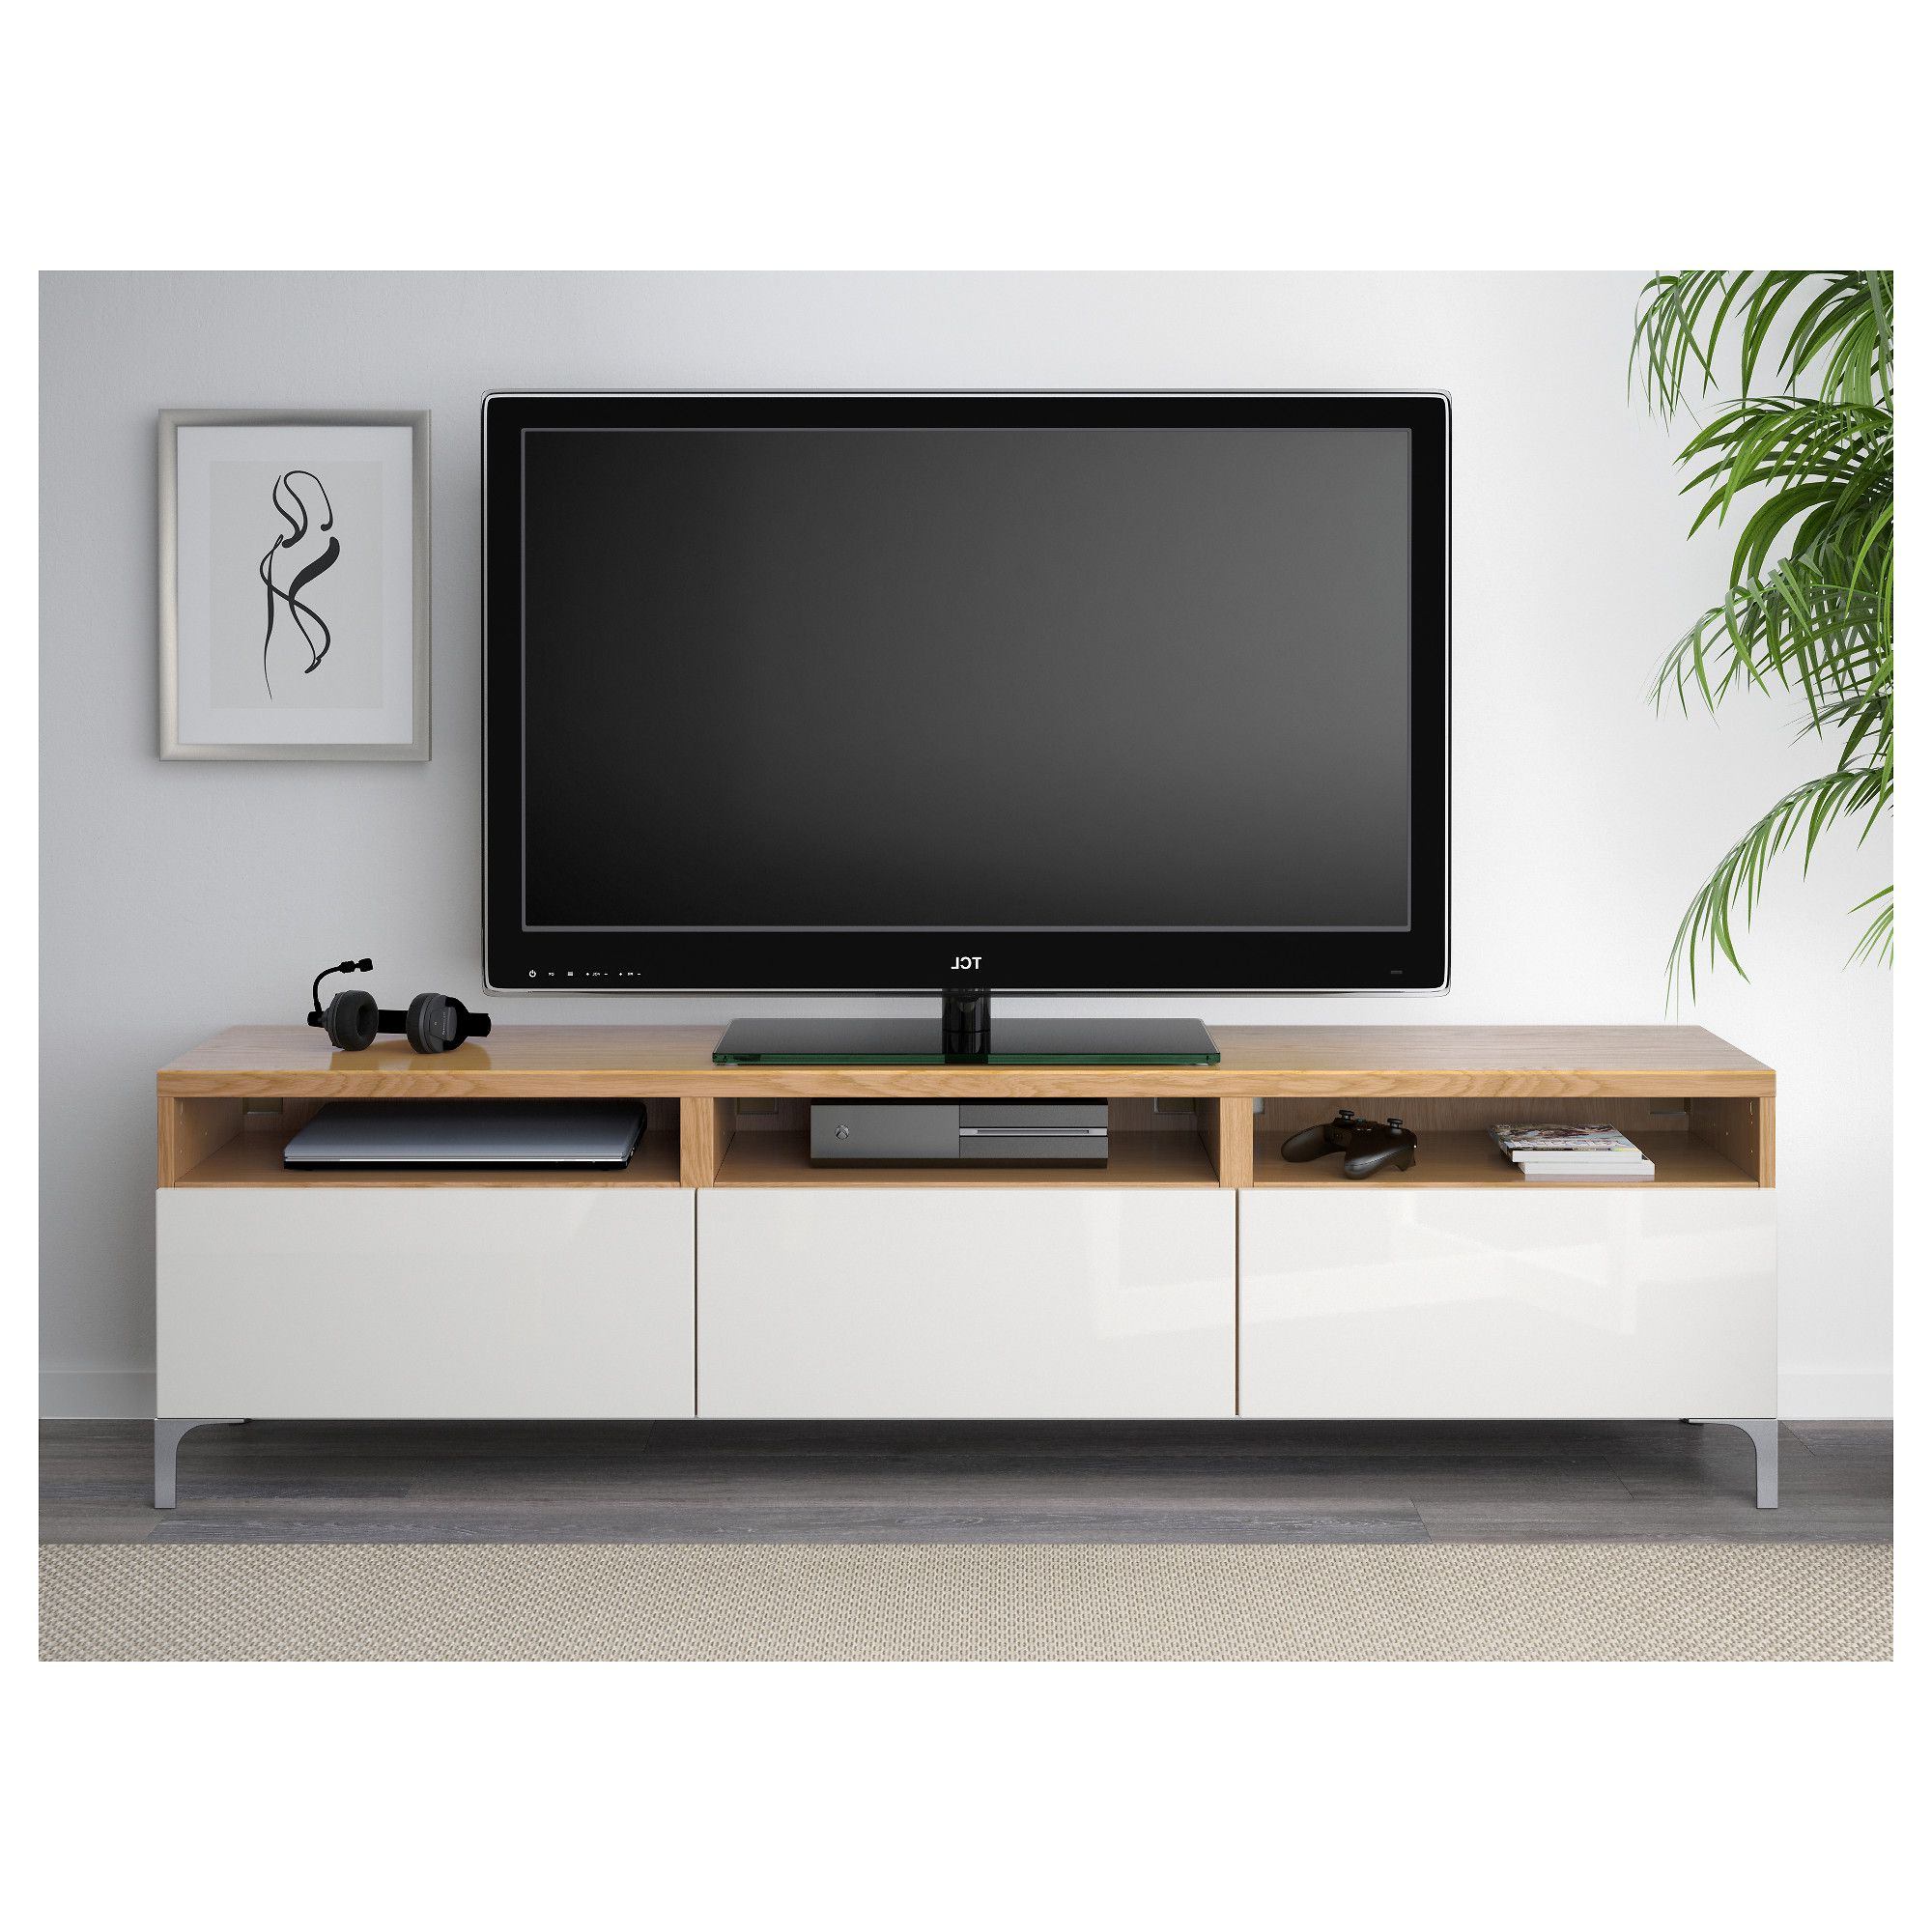 Well Known Bestå Tv Bench With Drawers Oak Effect/selsviken High Gloss/white Regarding High Gloss Tv Benches (View 17 of 20)